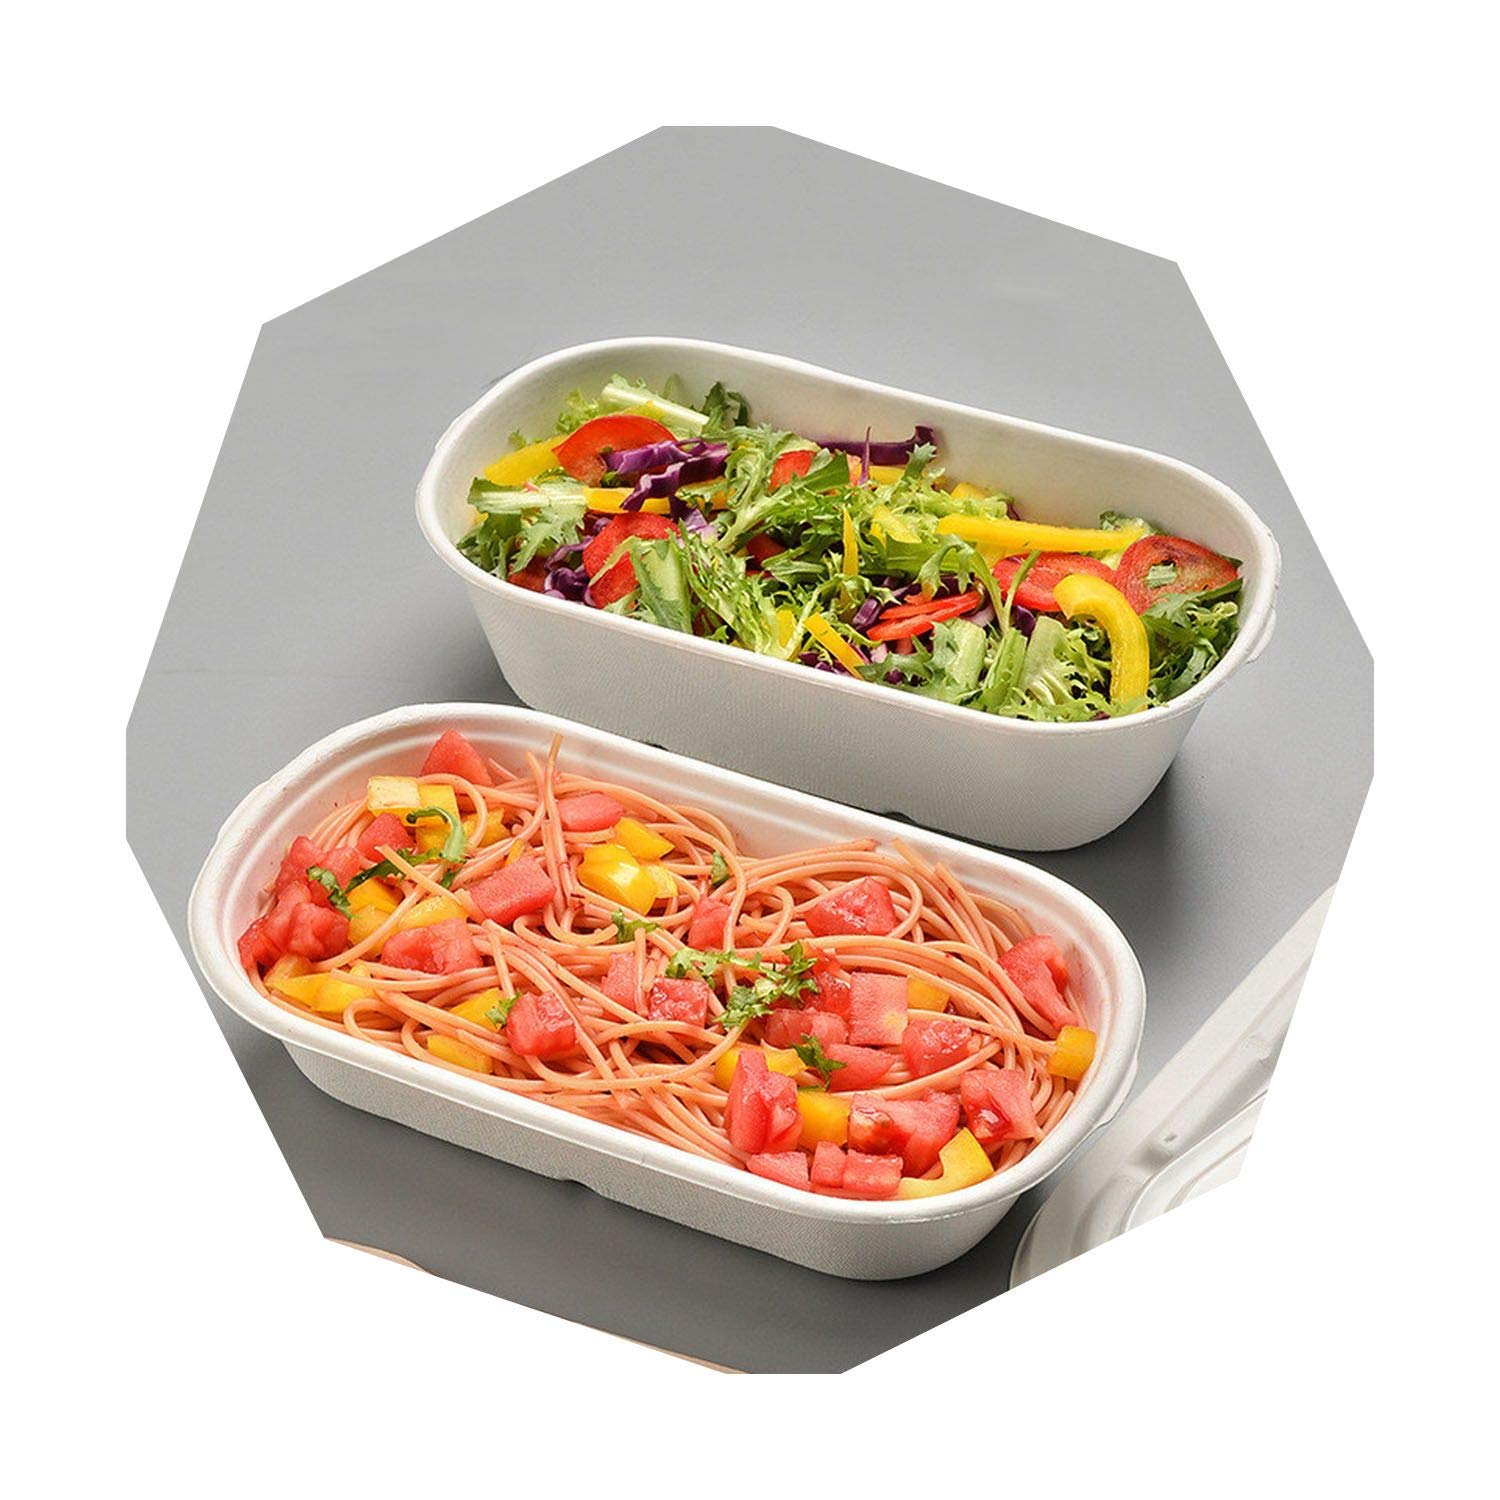 500x Disposable Box Compostable Bagasse Biodegrade Food Grade Eco-Friendly Take-Out Carry-Out Take-Away Lunch Box Bowl Lids,1000ml by JIA-WALK